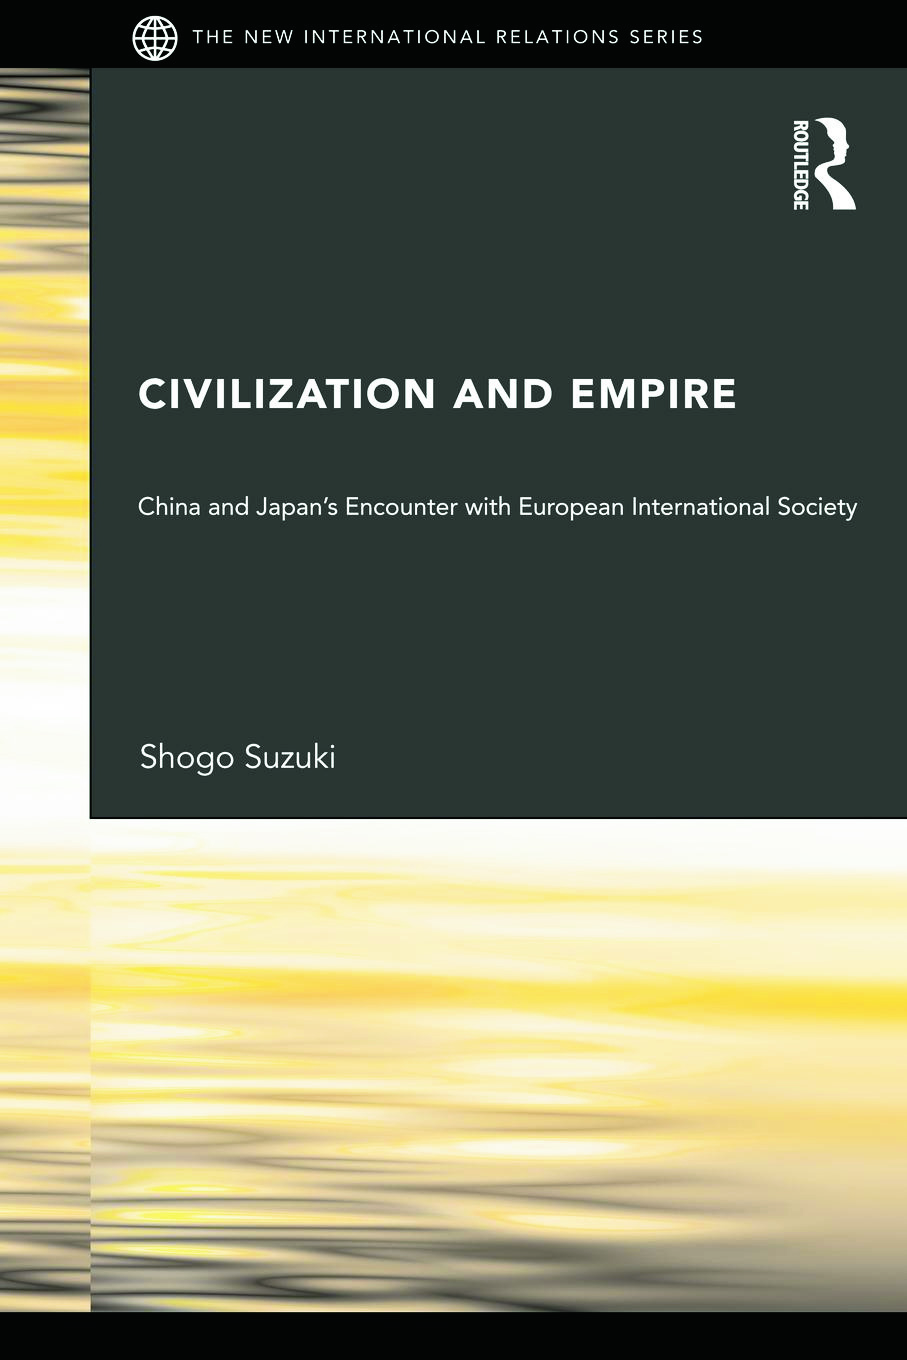 Acquiring knowledge: Chinese and Japanese perceptions of European International Society